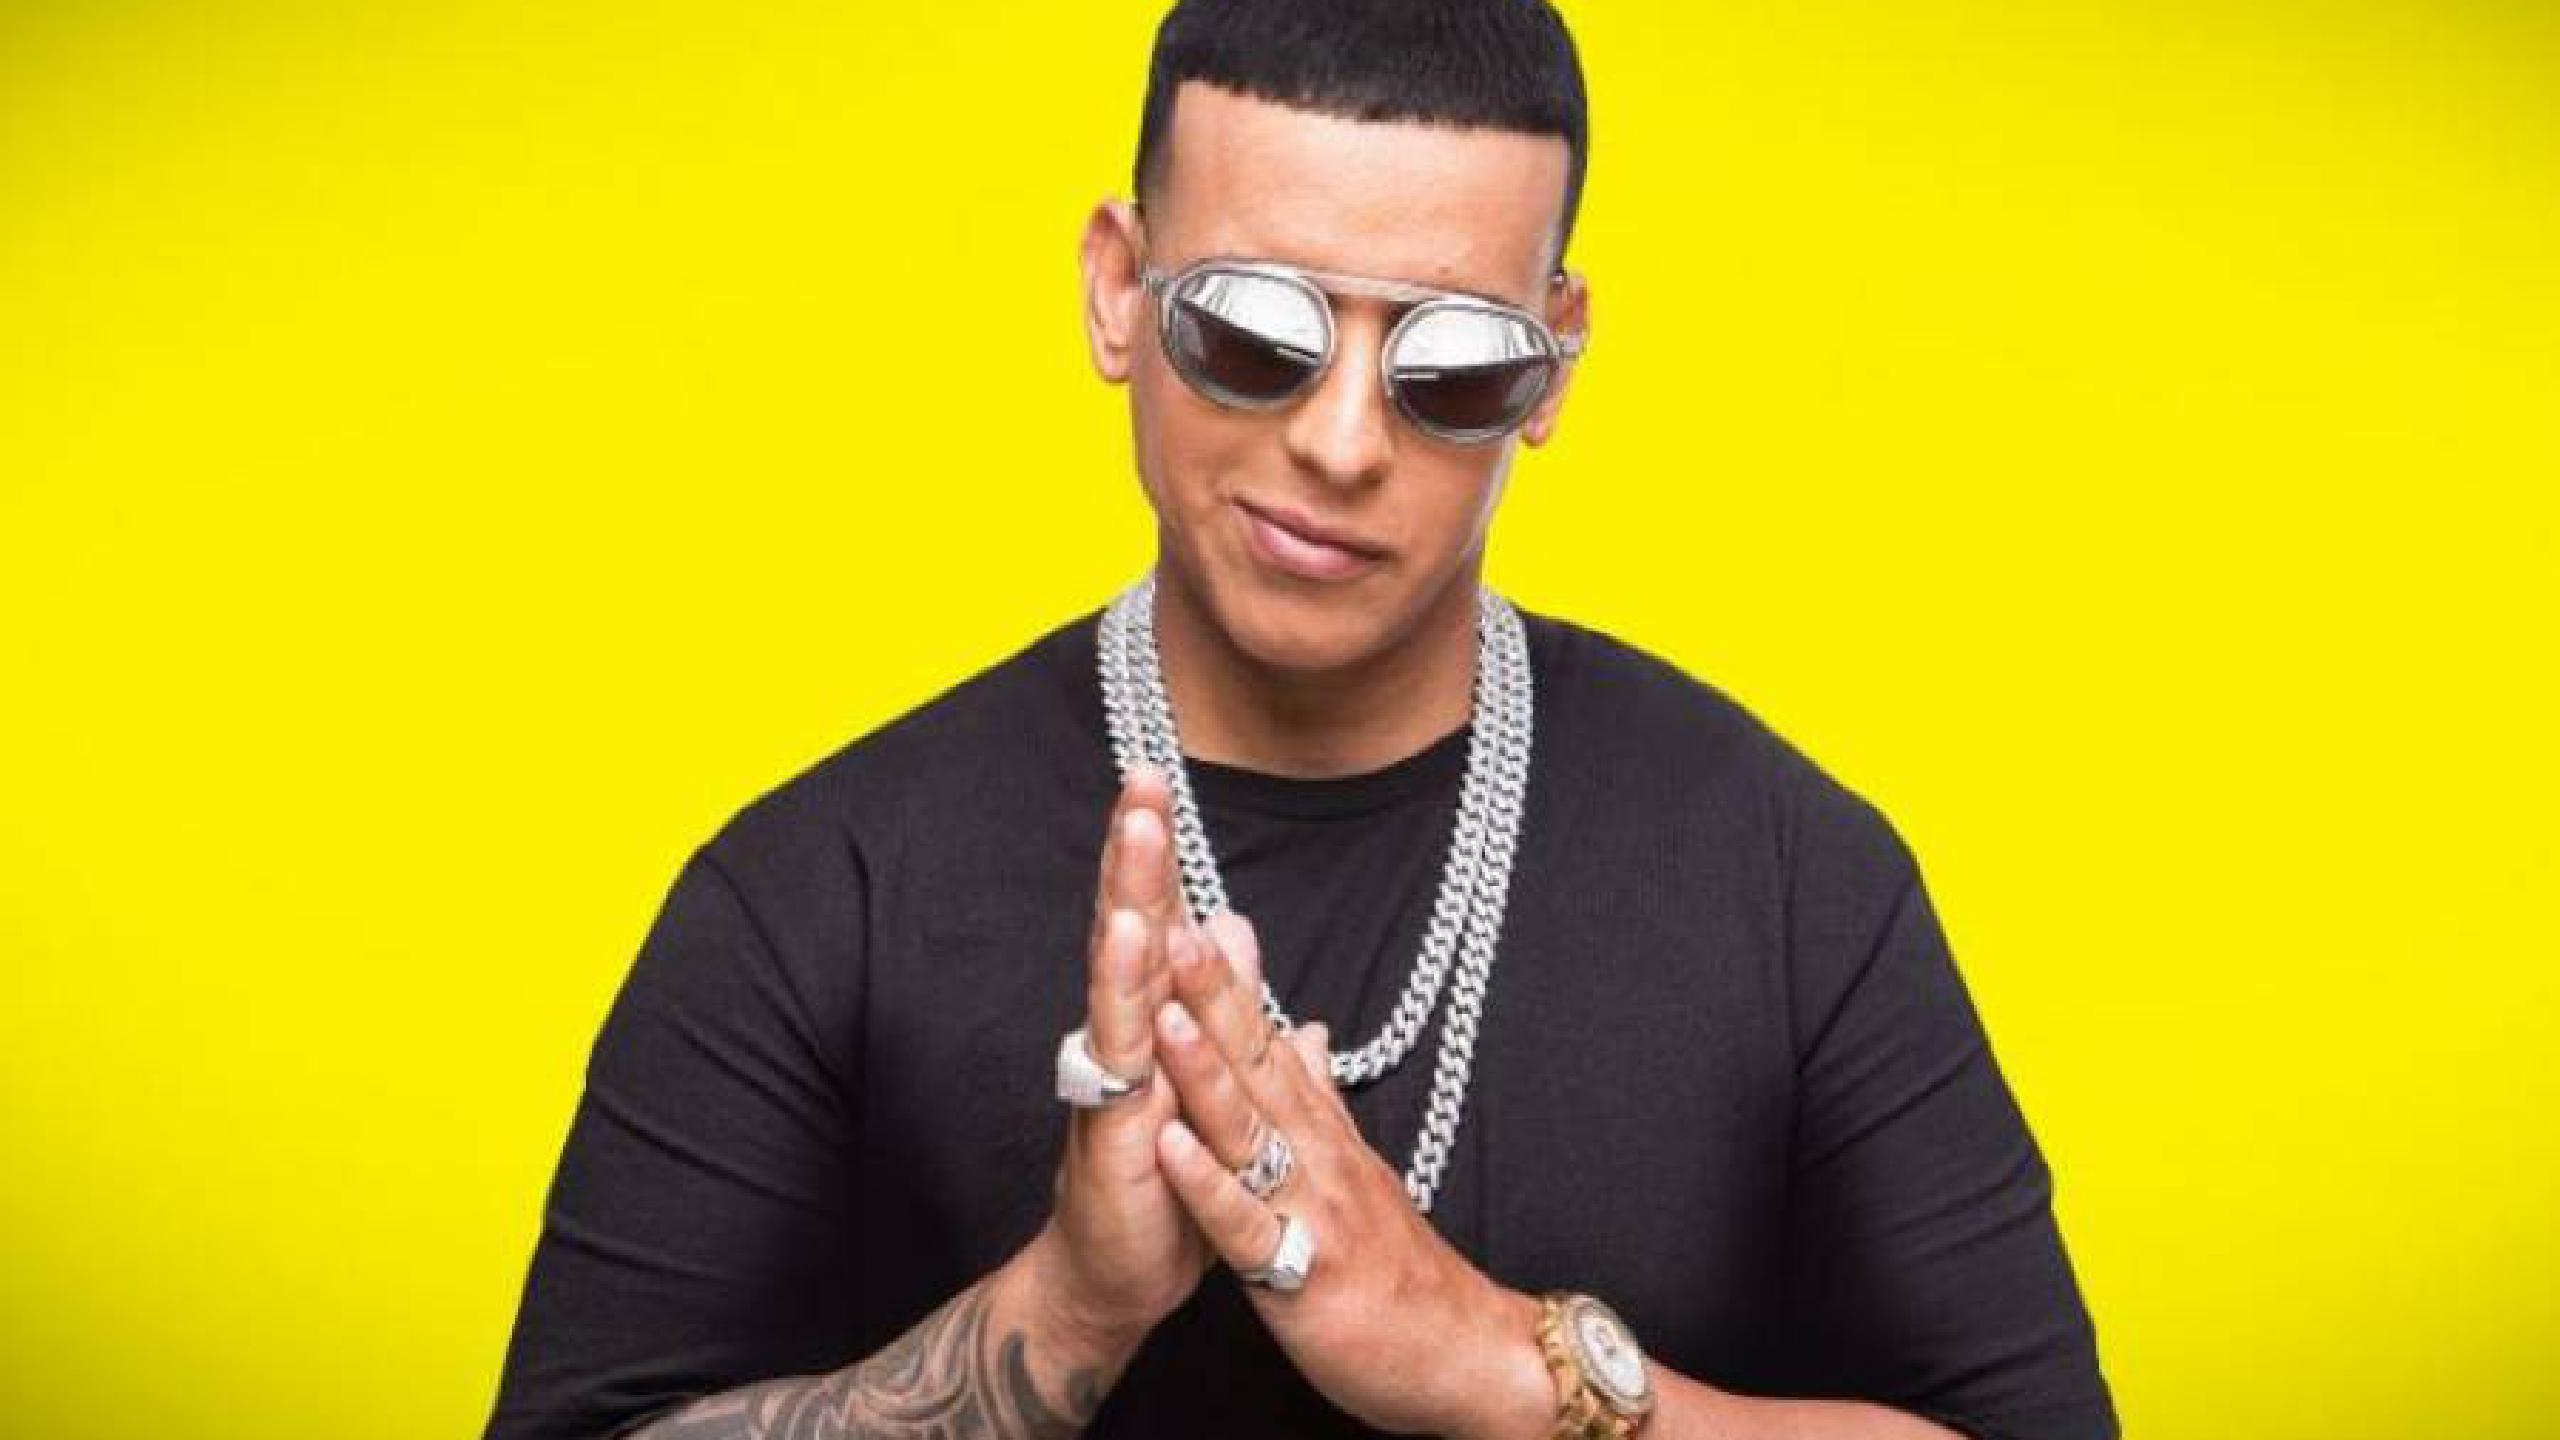 Reggaeton Top 2020.Daddy Yankee Tour Dates 2019 2020 Daddy Yankee Tickets And Concerts